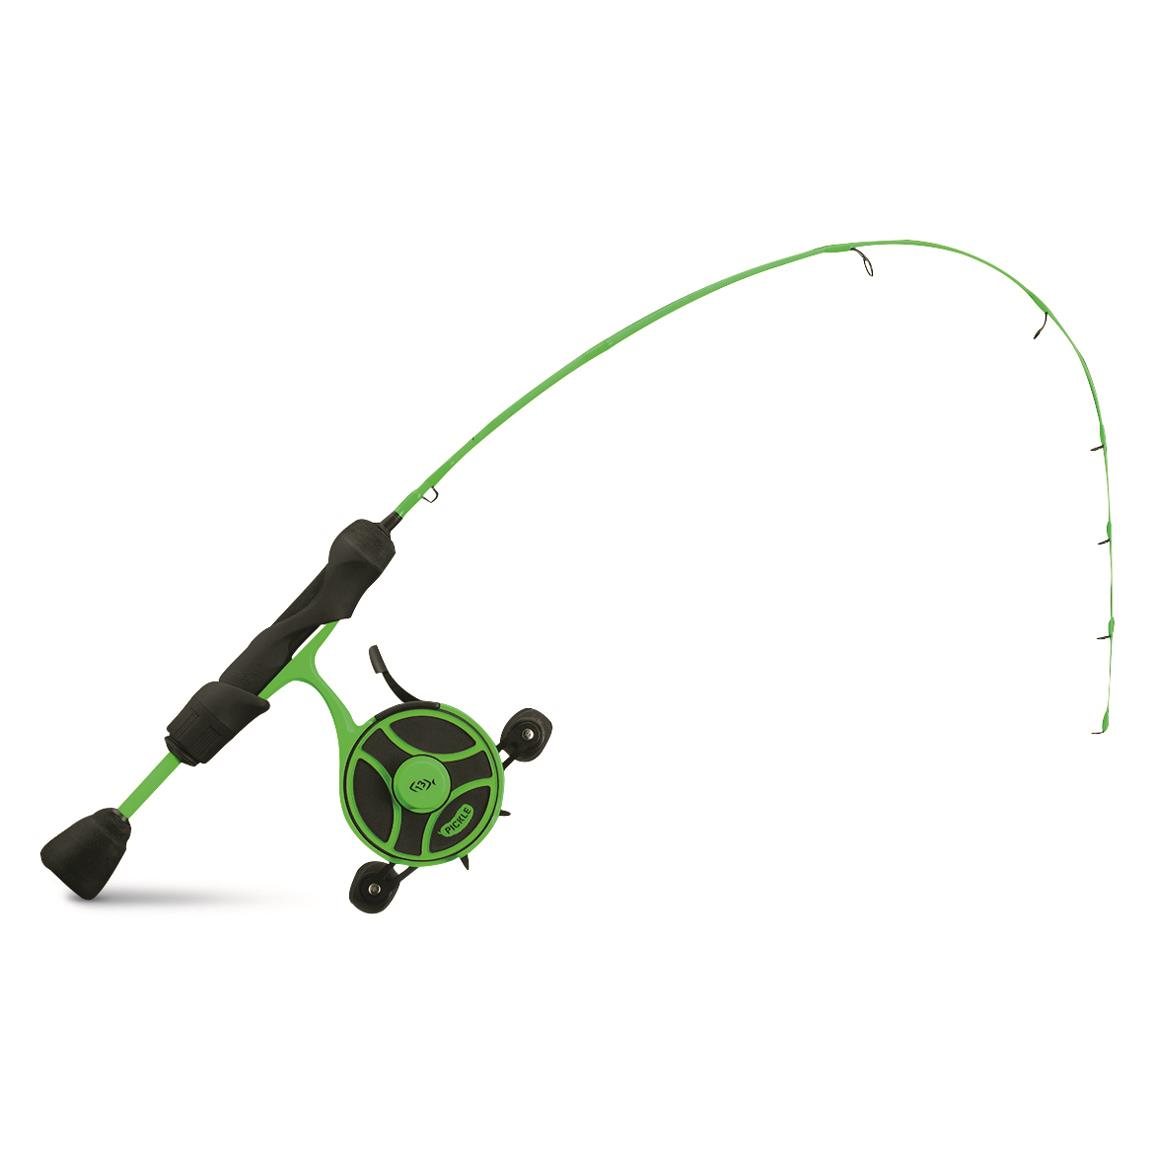 13 Fishing Black Betty FreeFall Ghost Radioactive Pickle Ice Fishing Combo, Ultralight Action, 25""